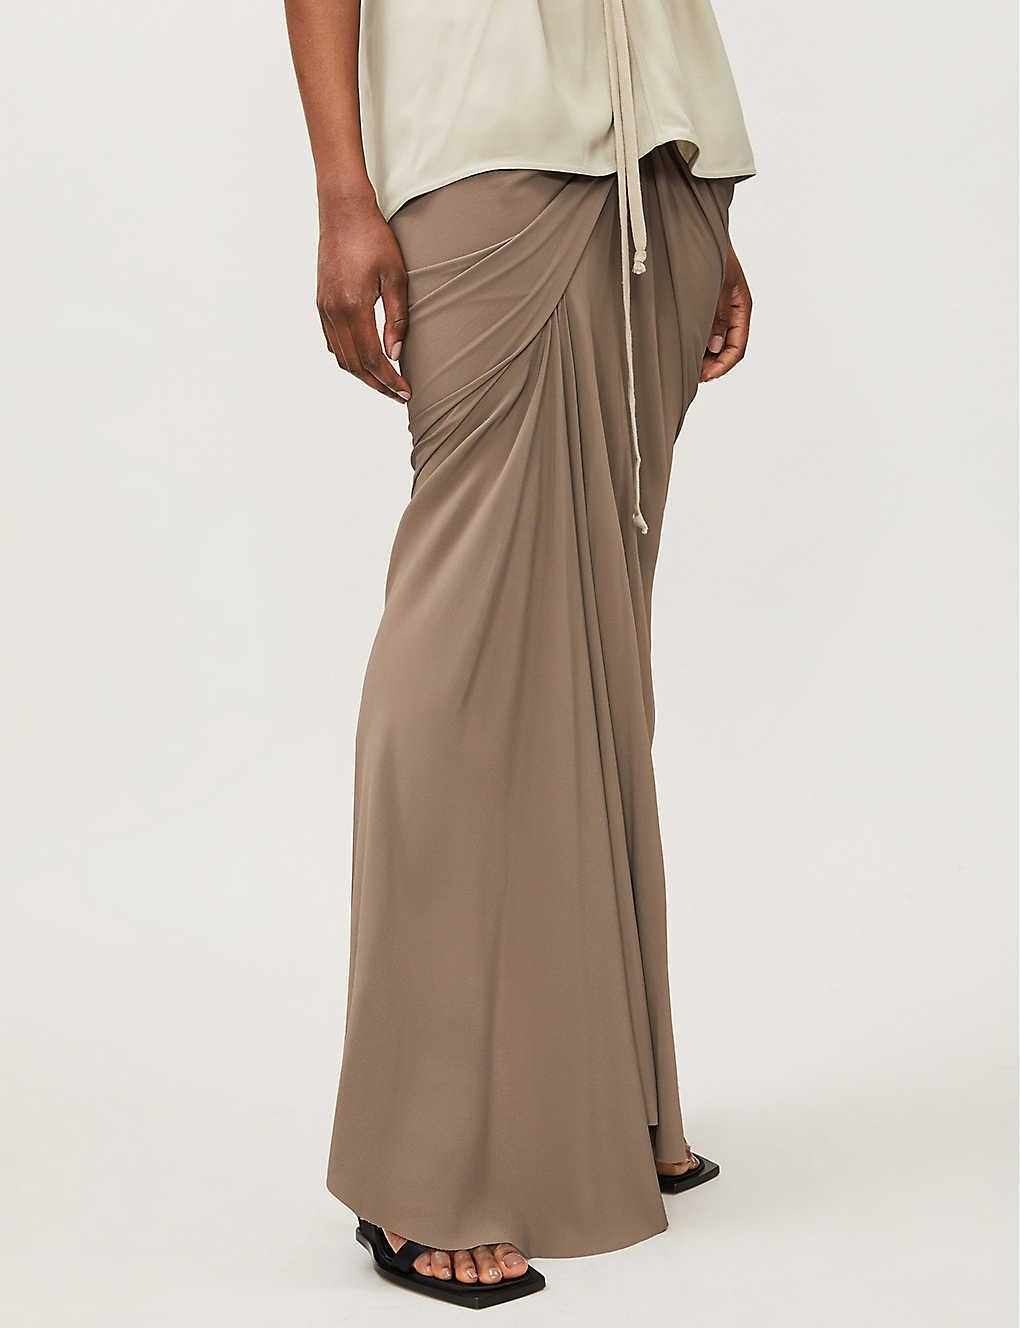 Maxi Skirt - Ruched - Dust - Sz 46-1